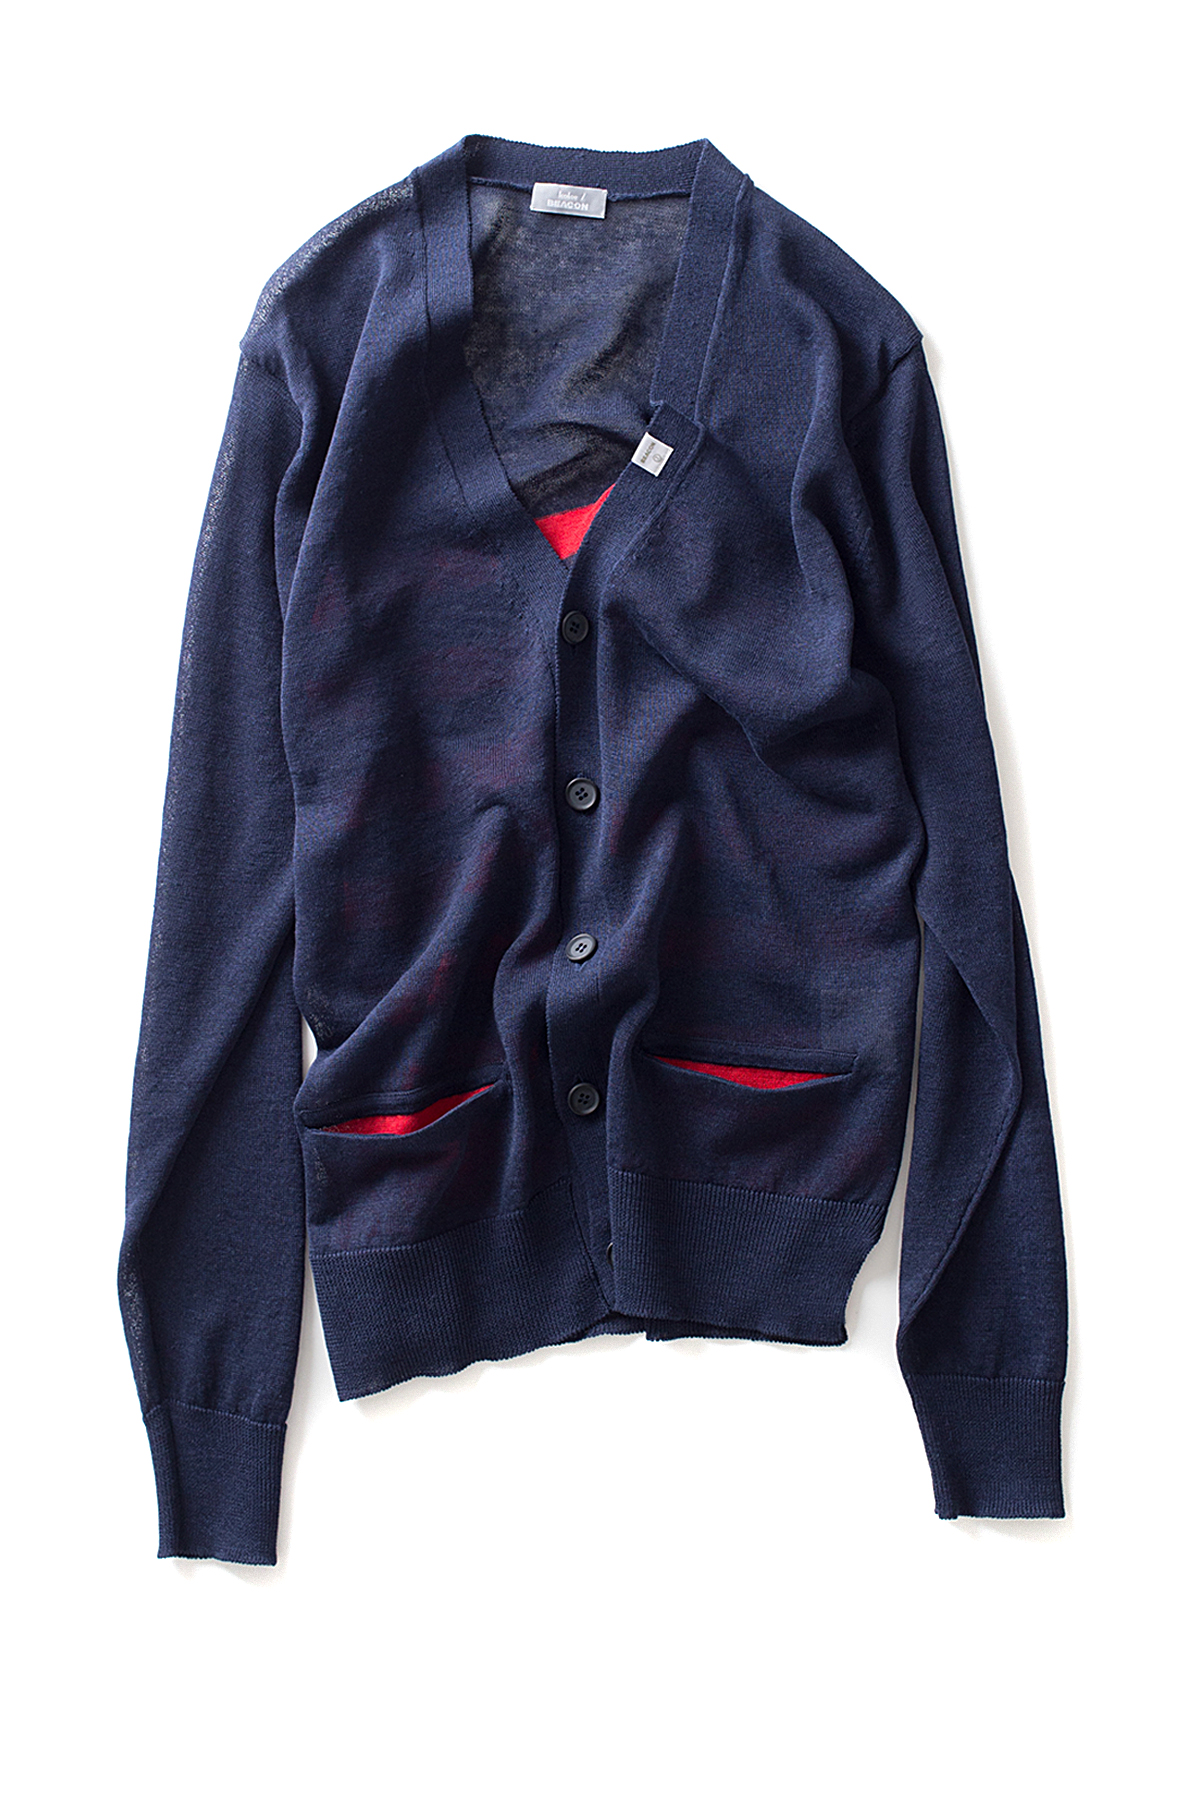 kolor / BEACON : 17SBM-N03333 (Navy)